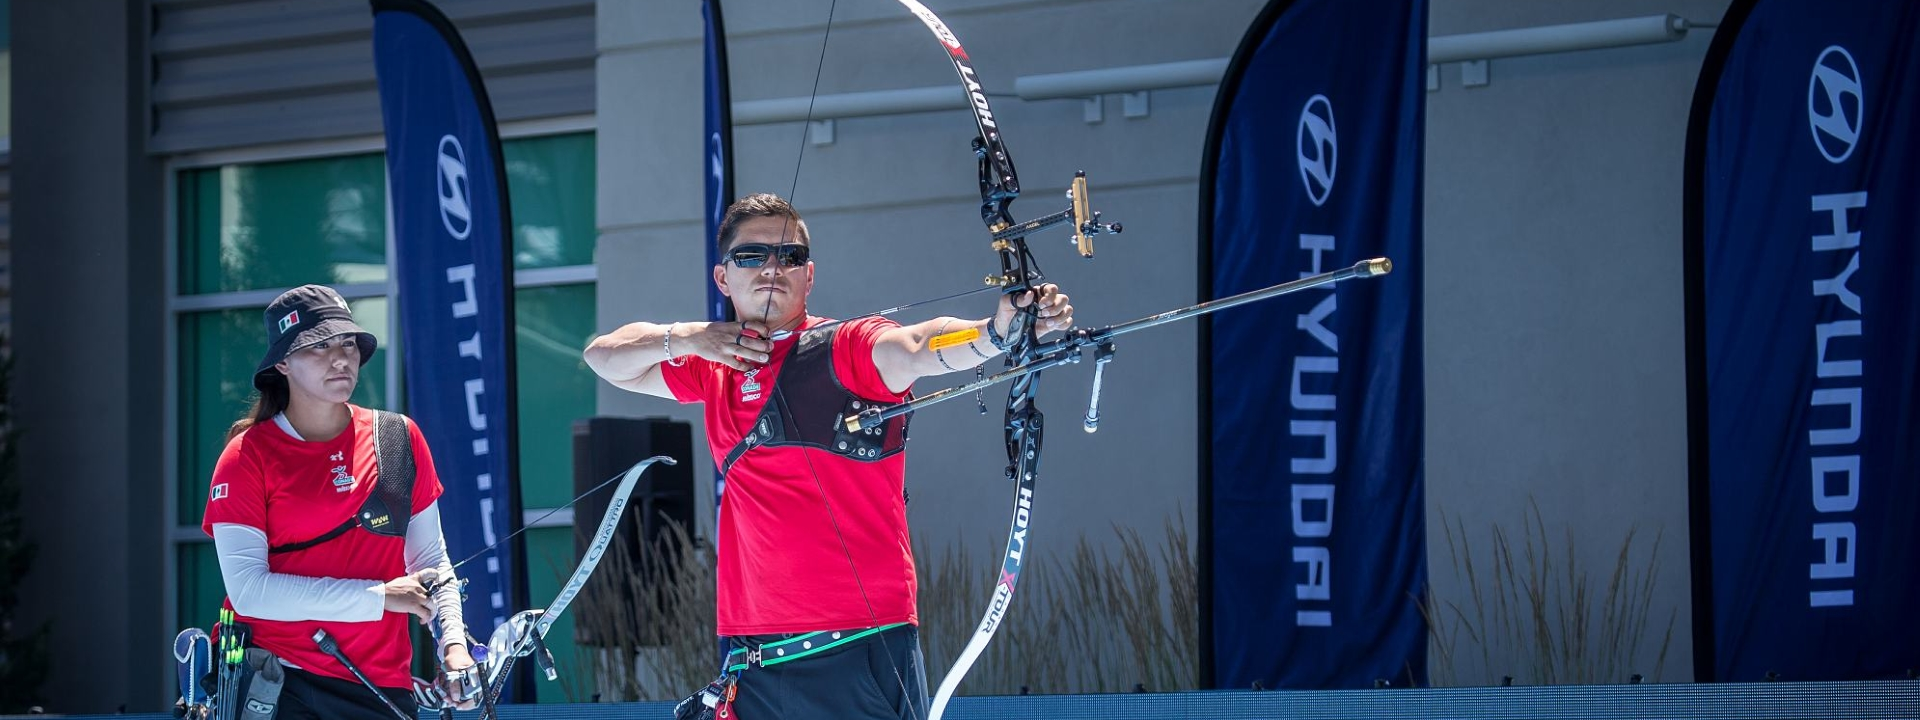 Sponsorship on target: Hyundai Archery World Cup 2017